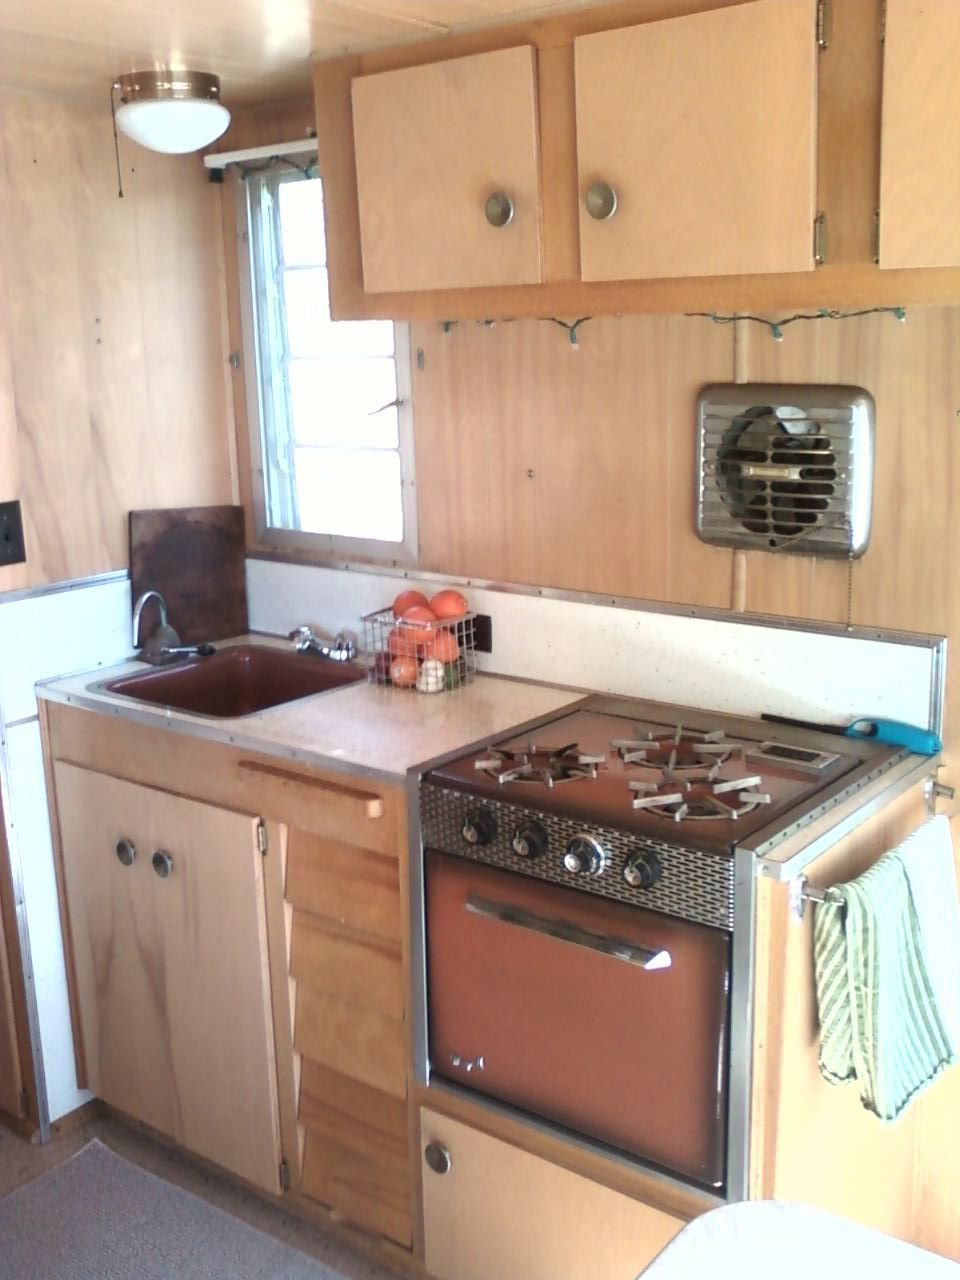 Repurposed Camper Stove Ventilation For Tiny House